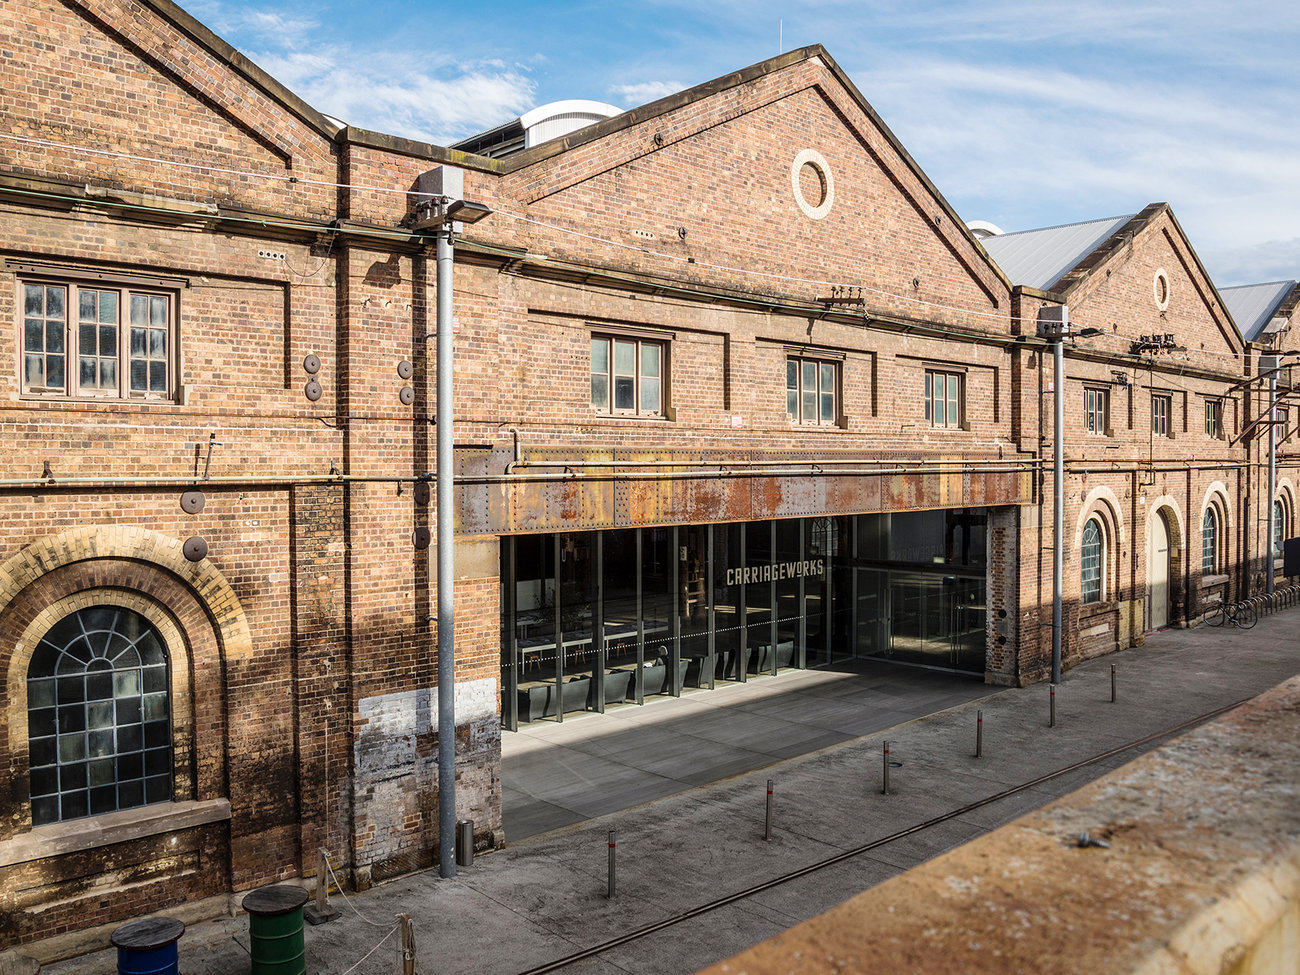 Carriageworks Arts Centre in Sydney